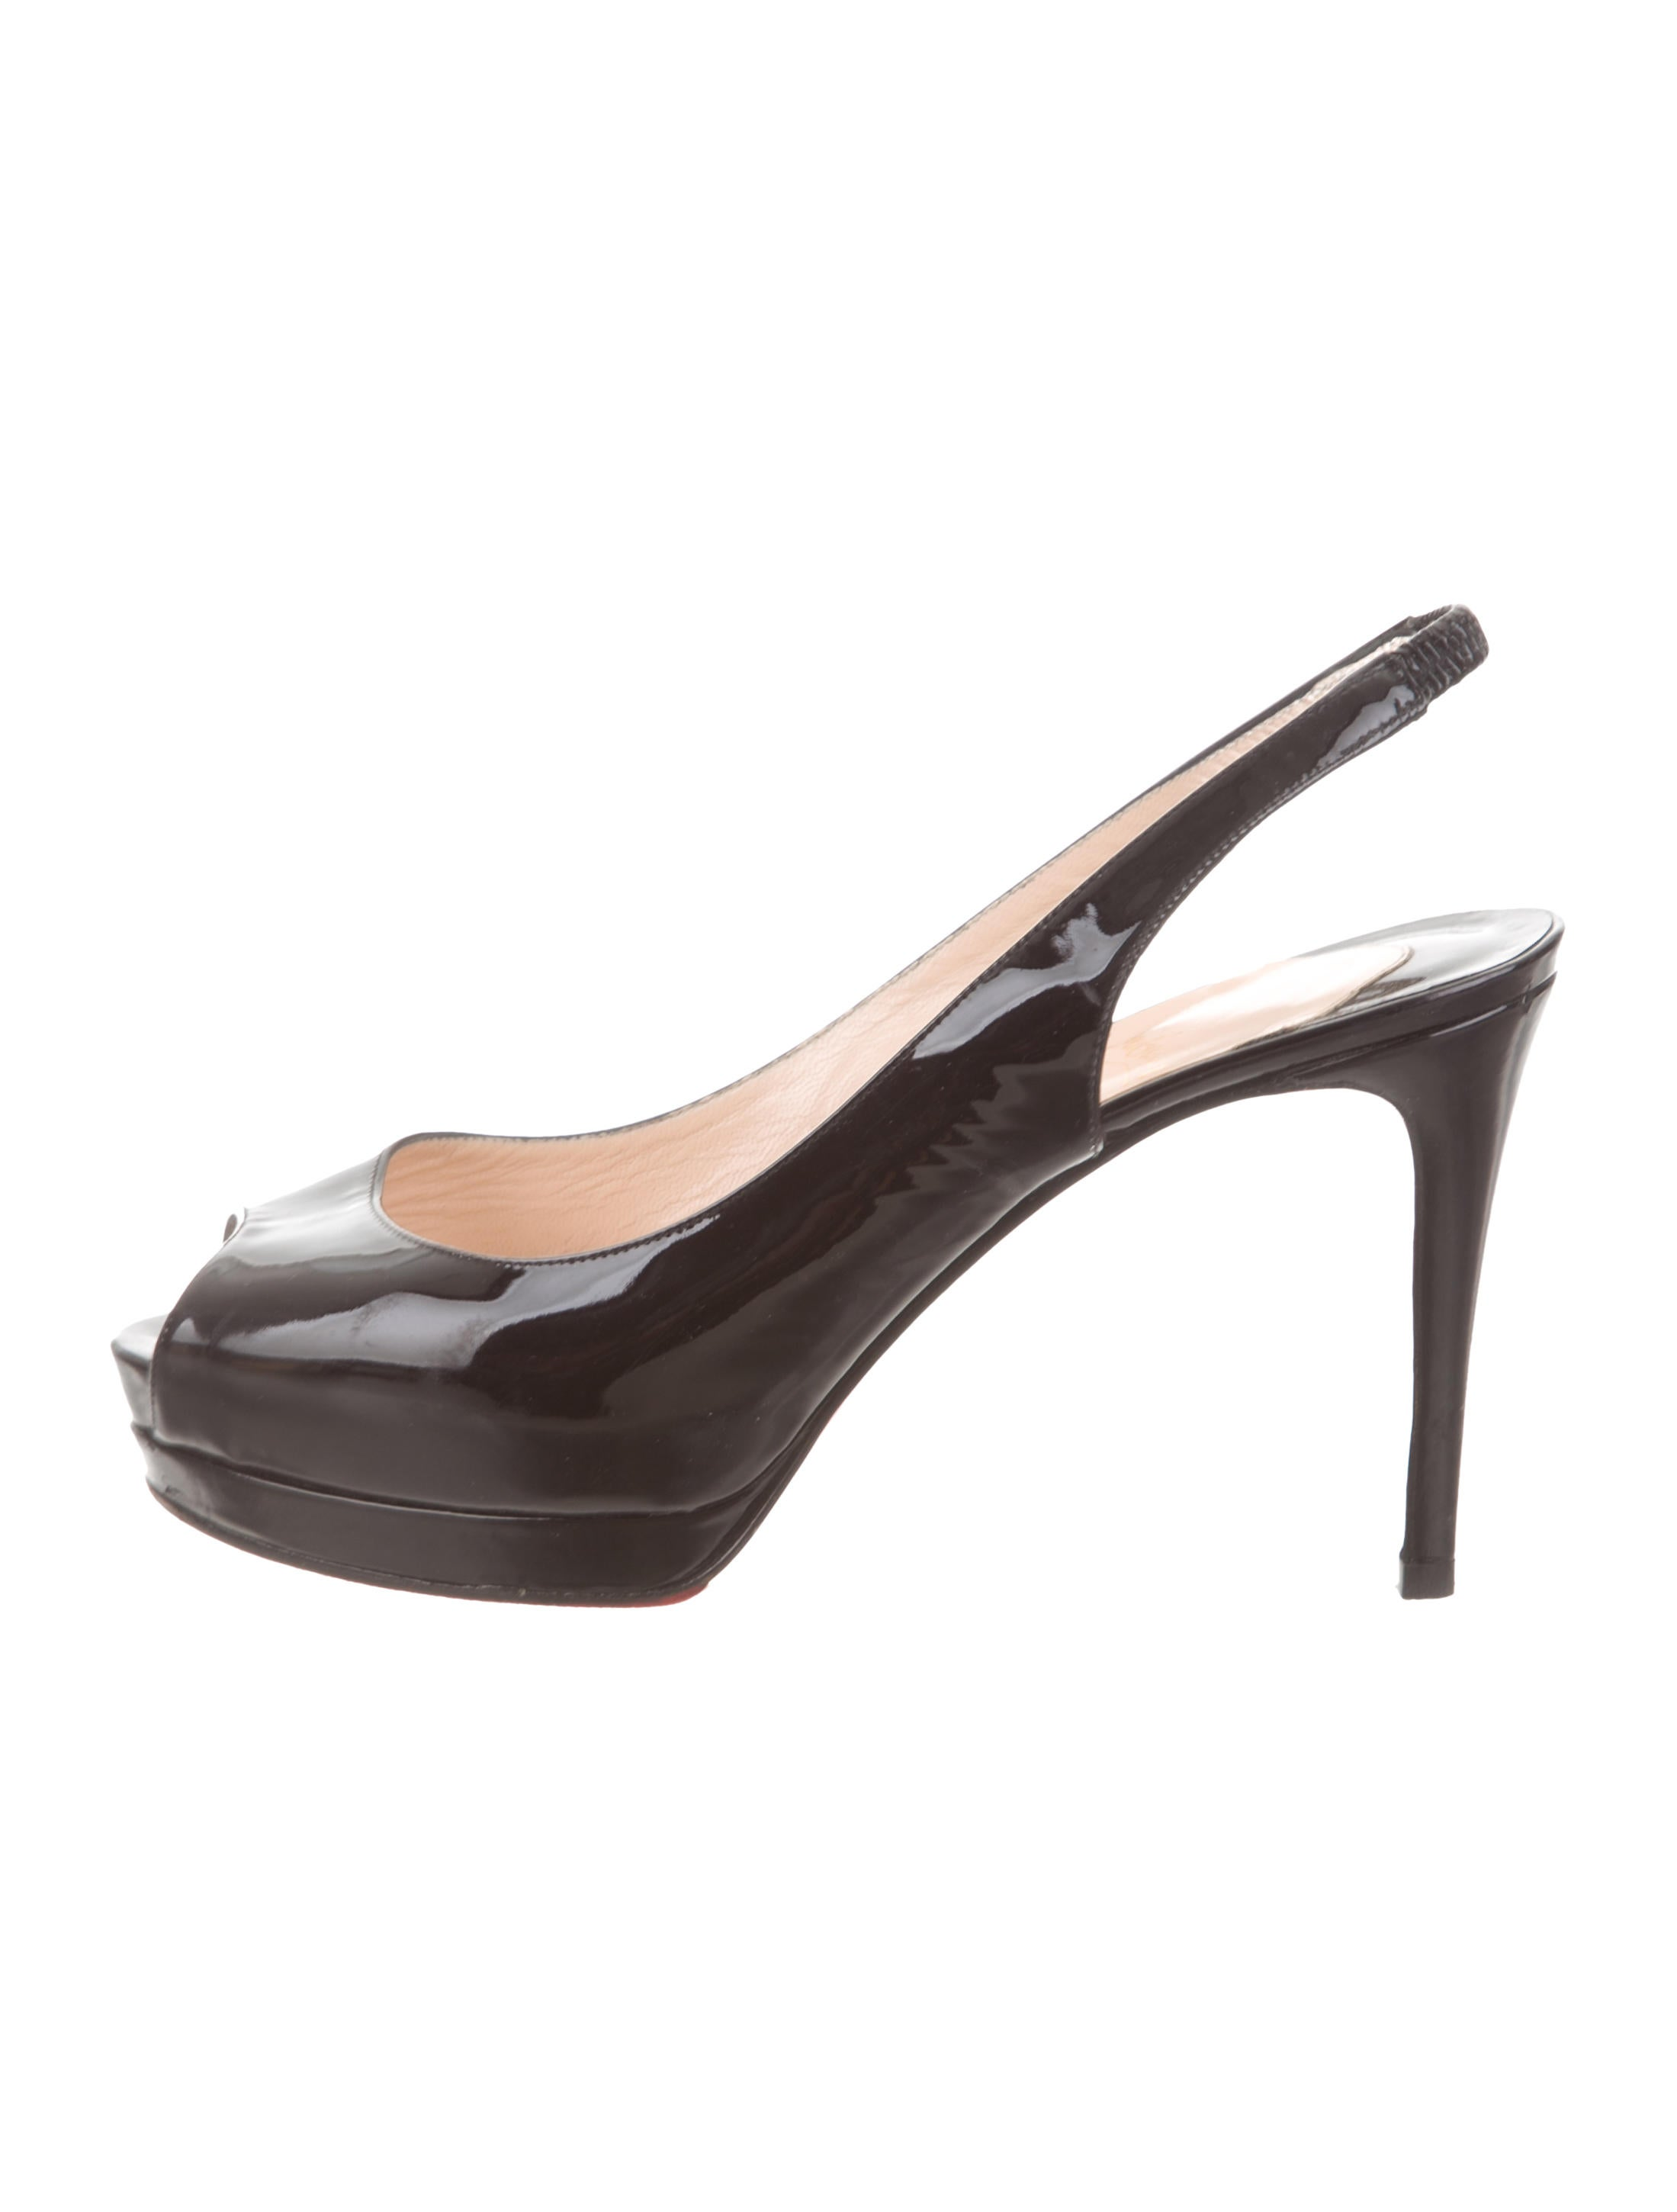 6aa6bf358703 Christian Louboutin Patent Leather Slingback Pumps - Shoes ...